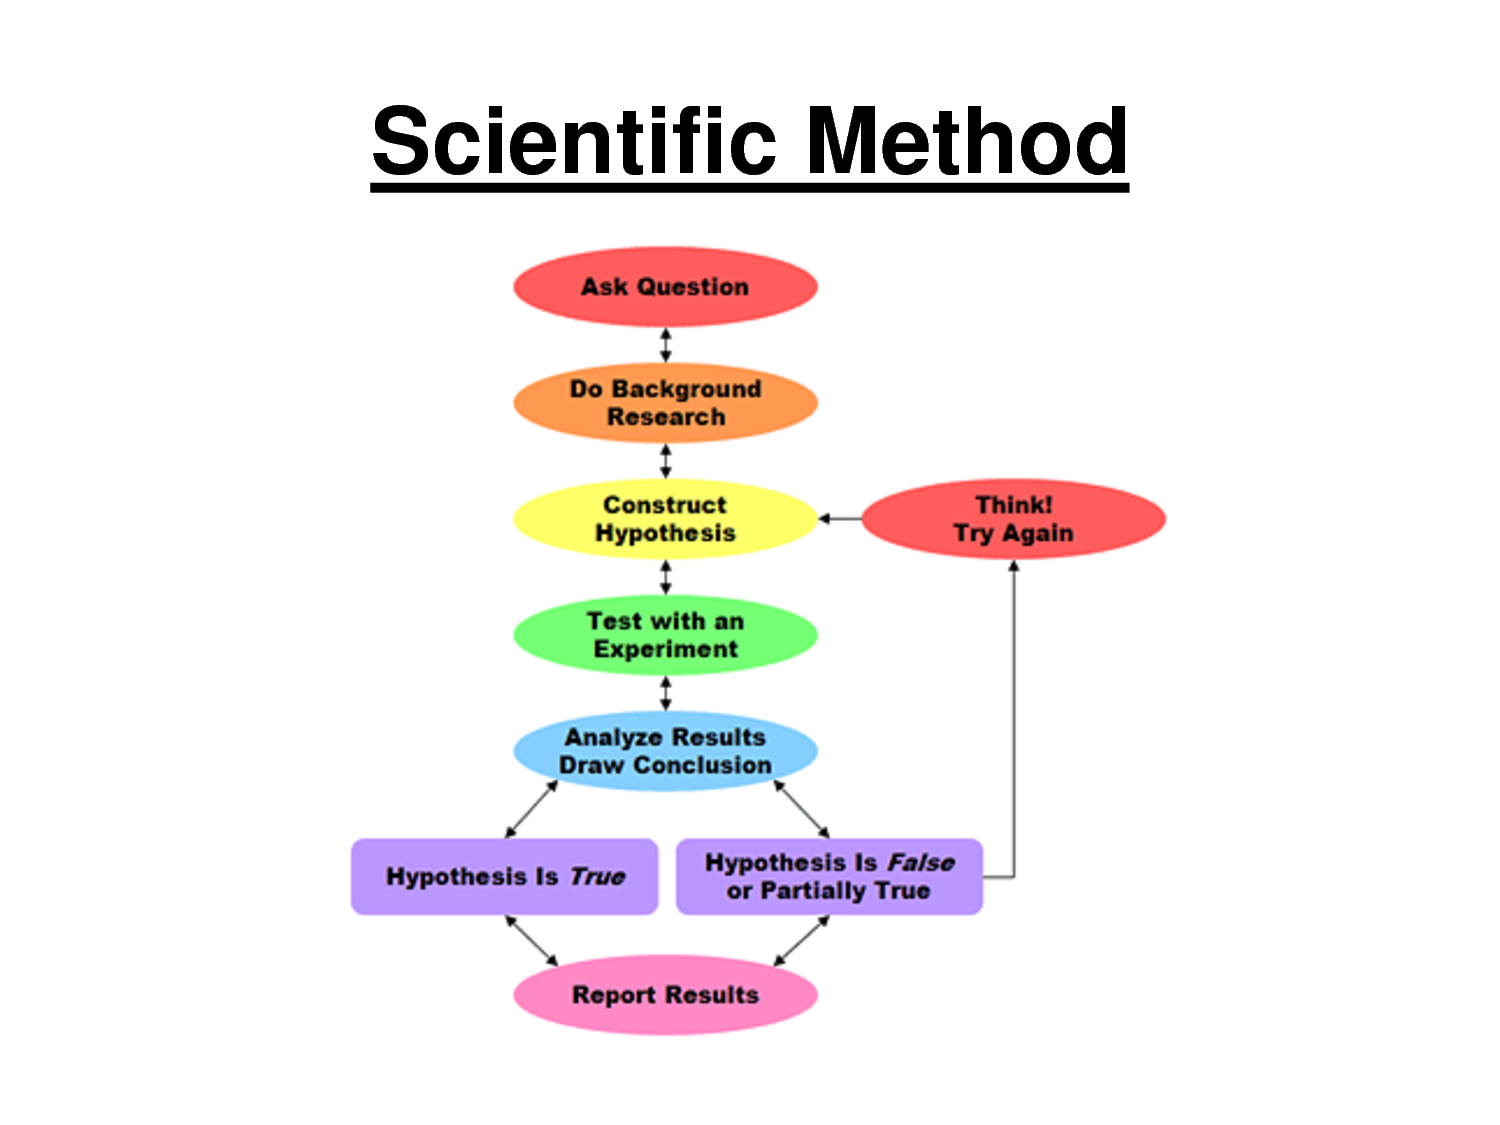 a study on the importance of the scientific method in political science This is argued to explain many important features and systematic while political science implies use of the scientific method, political studies implies a.